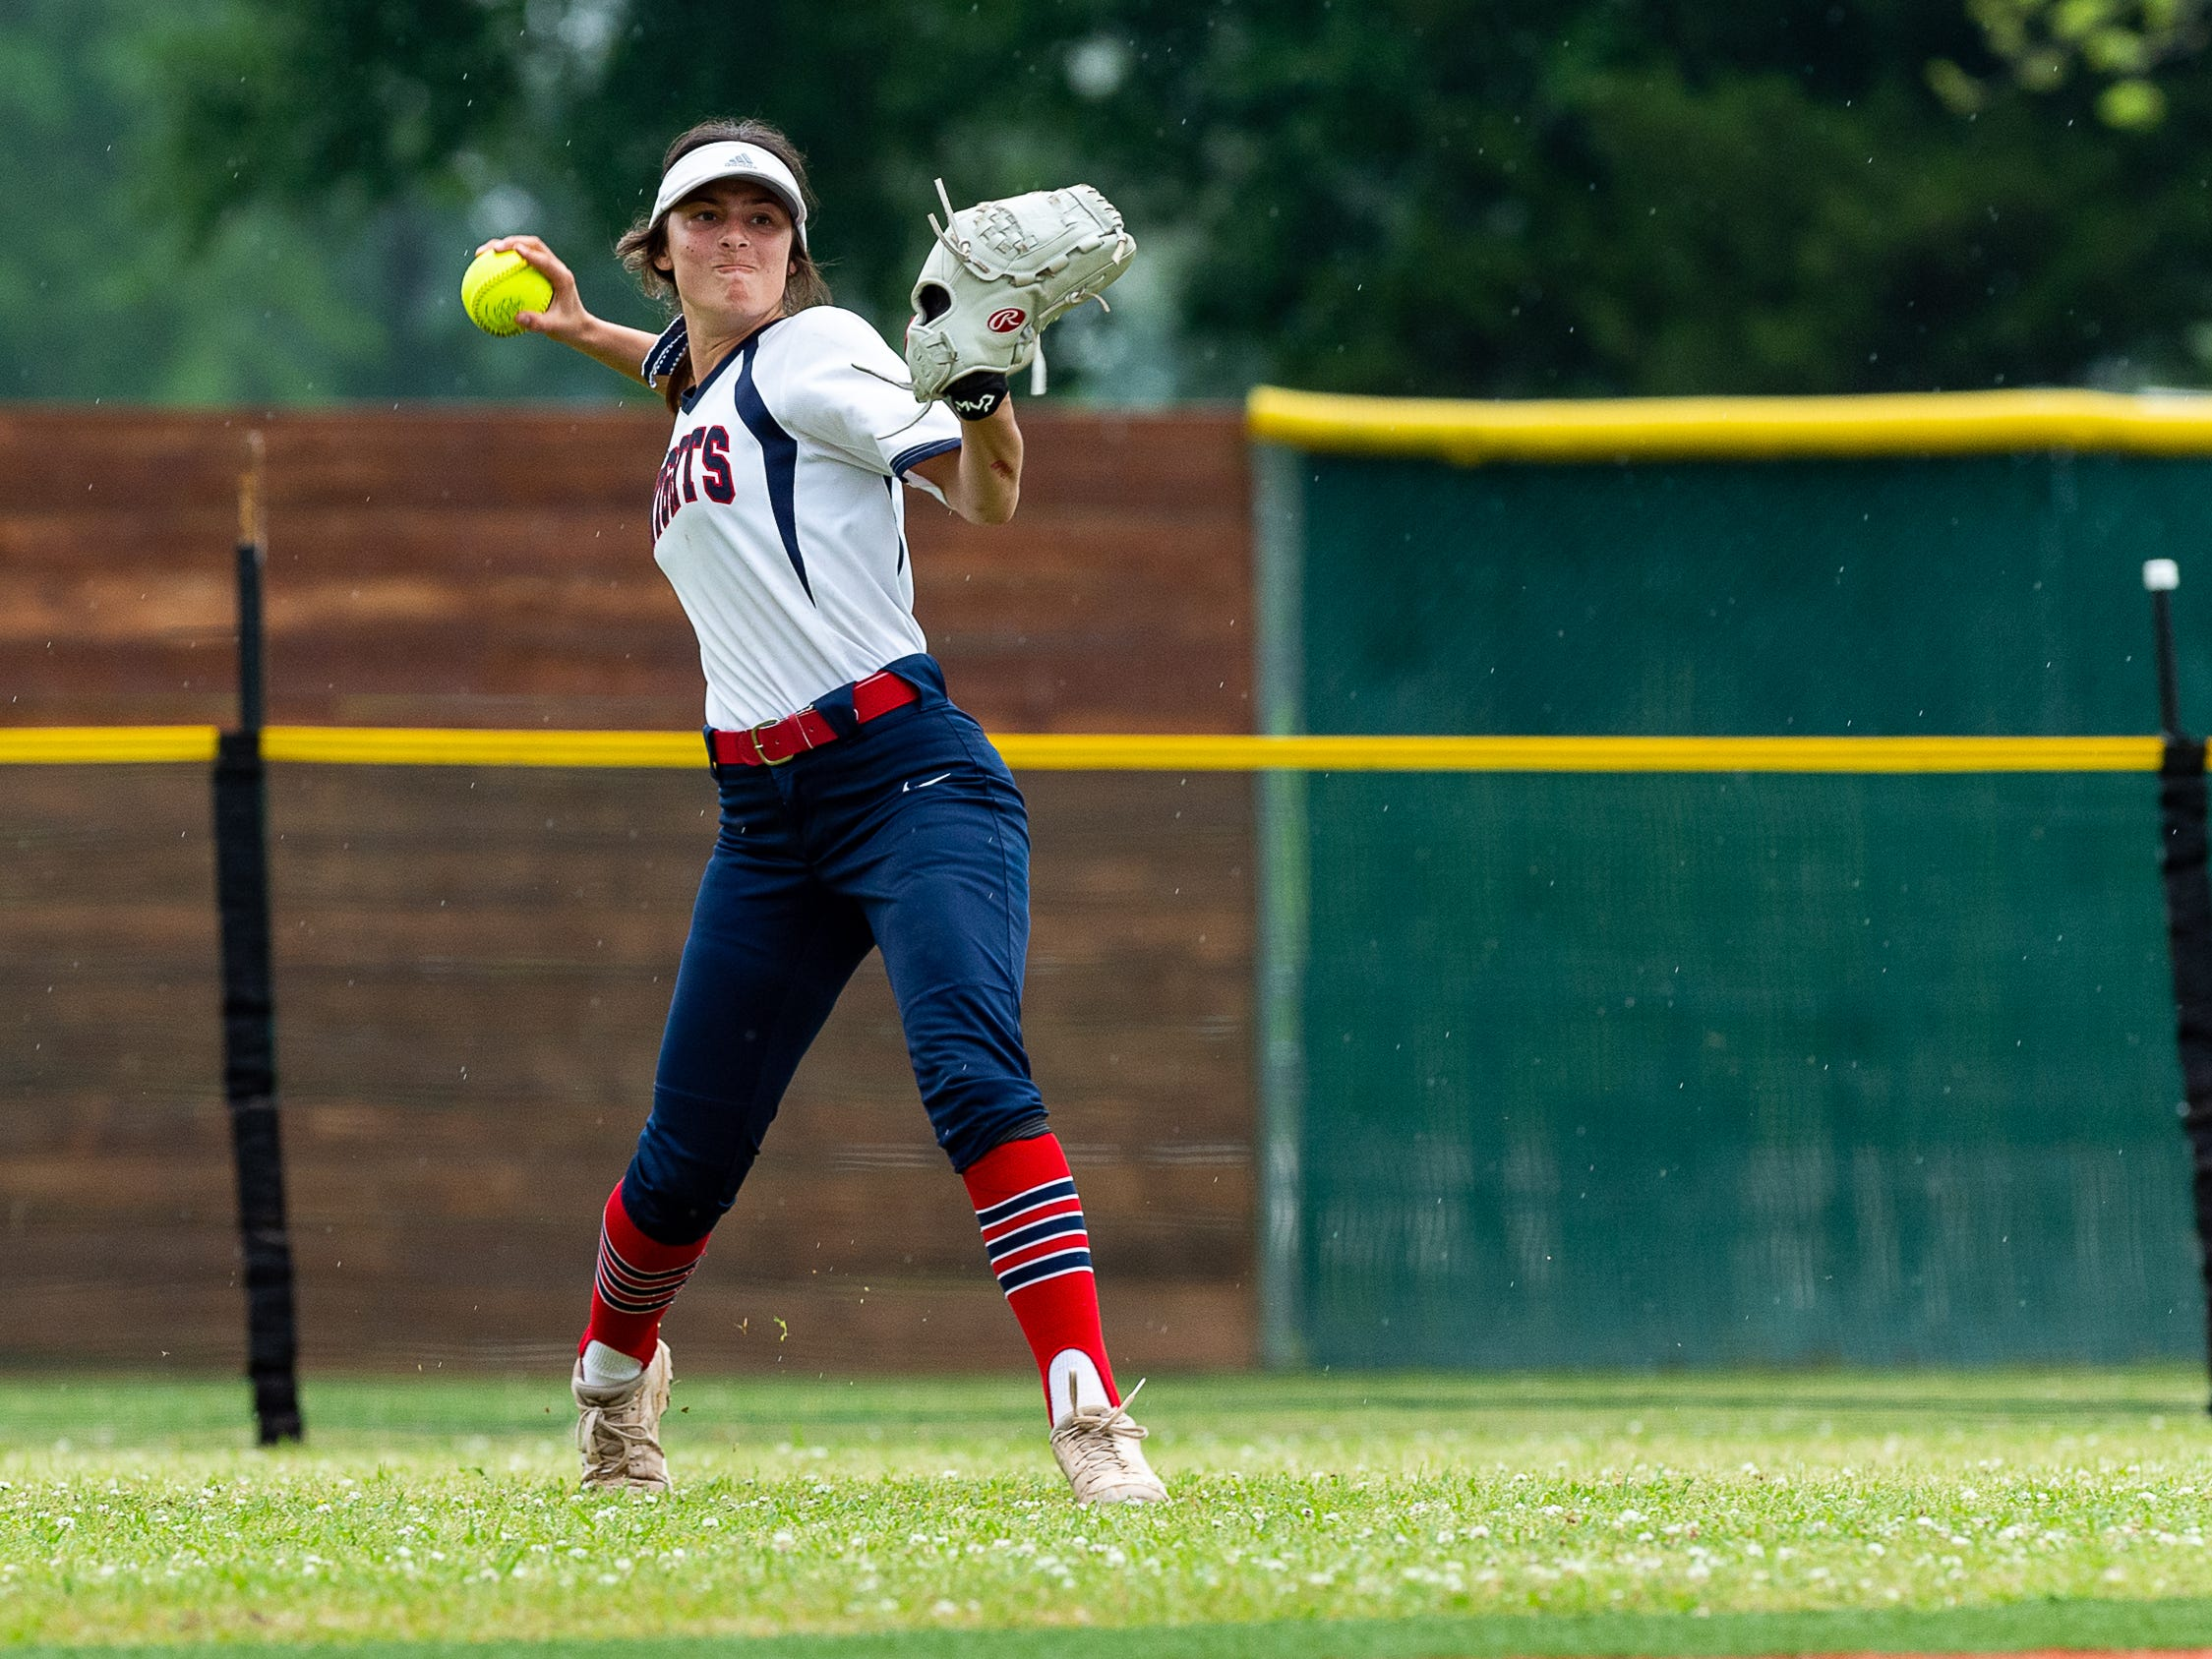 Outfielder Alyse Boudreaux  as Lafayette Christian Academy softball takes on University Academy in the forst round of the LHSAA playoffs. Friday, April 12, 2019.